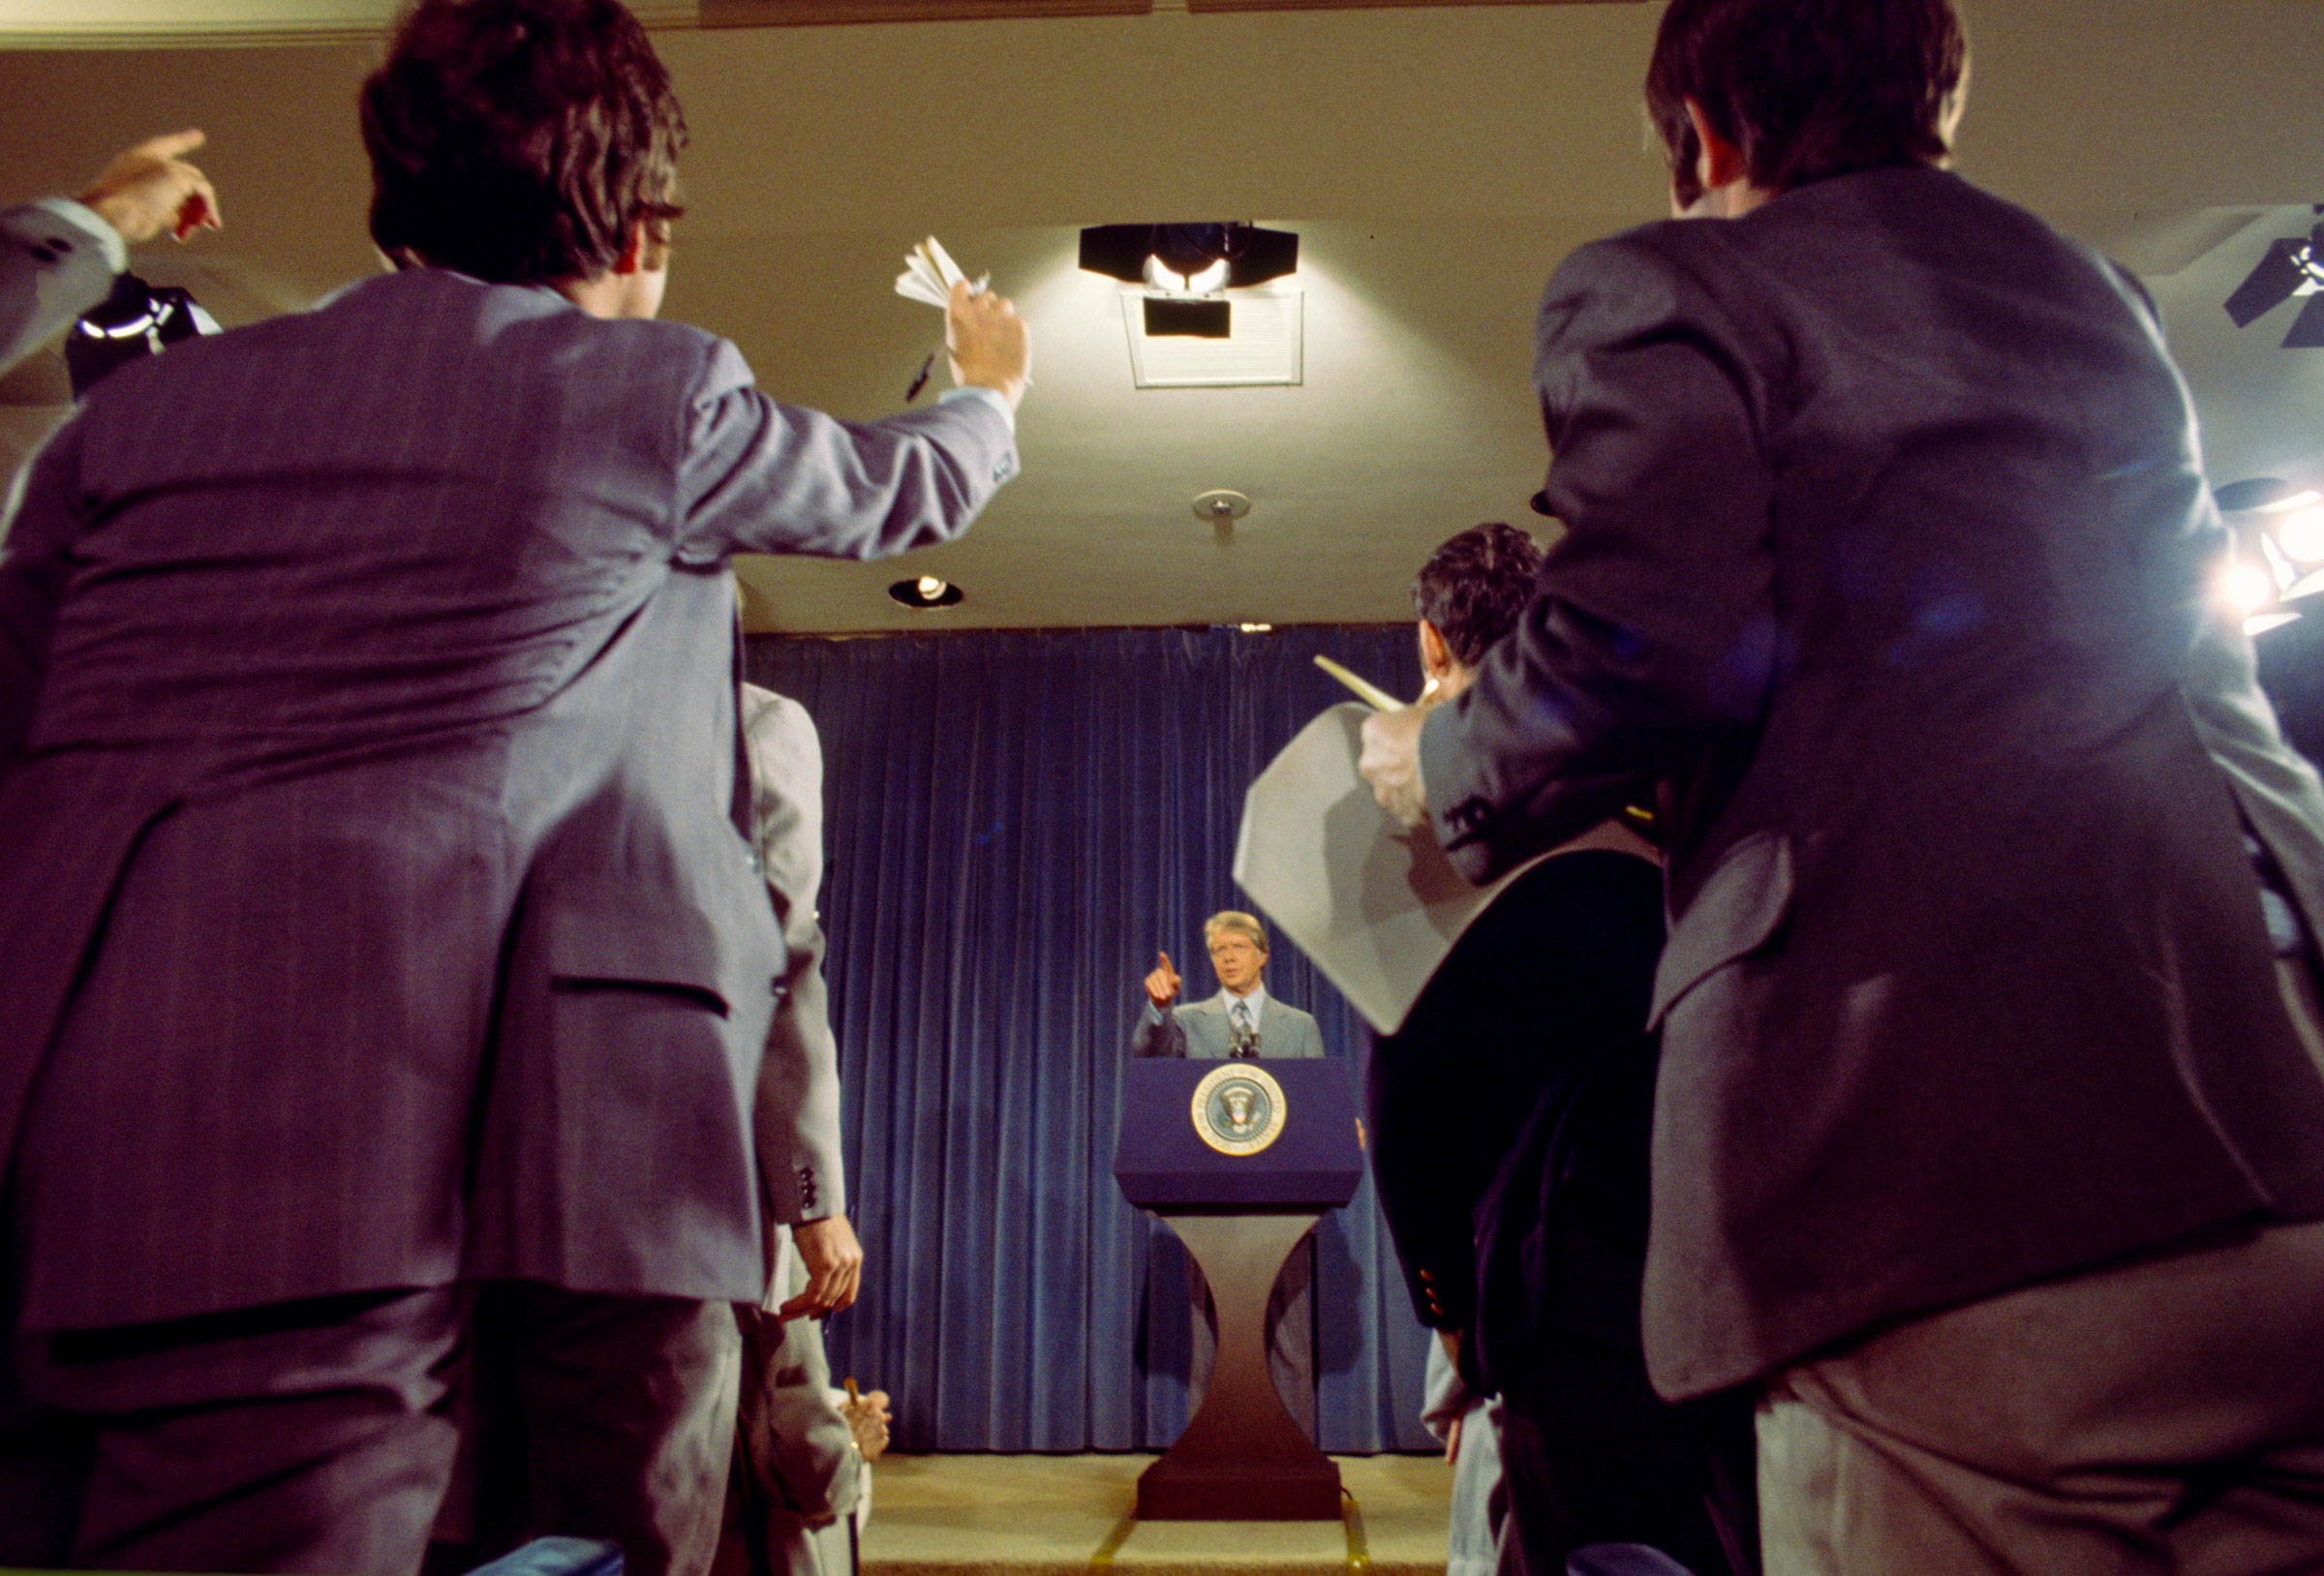 President Jimmy Carter takes questions from members of the press at a presidential news conference at the Old Executive Office Building, on April 15, 1977 in Washington, DC.